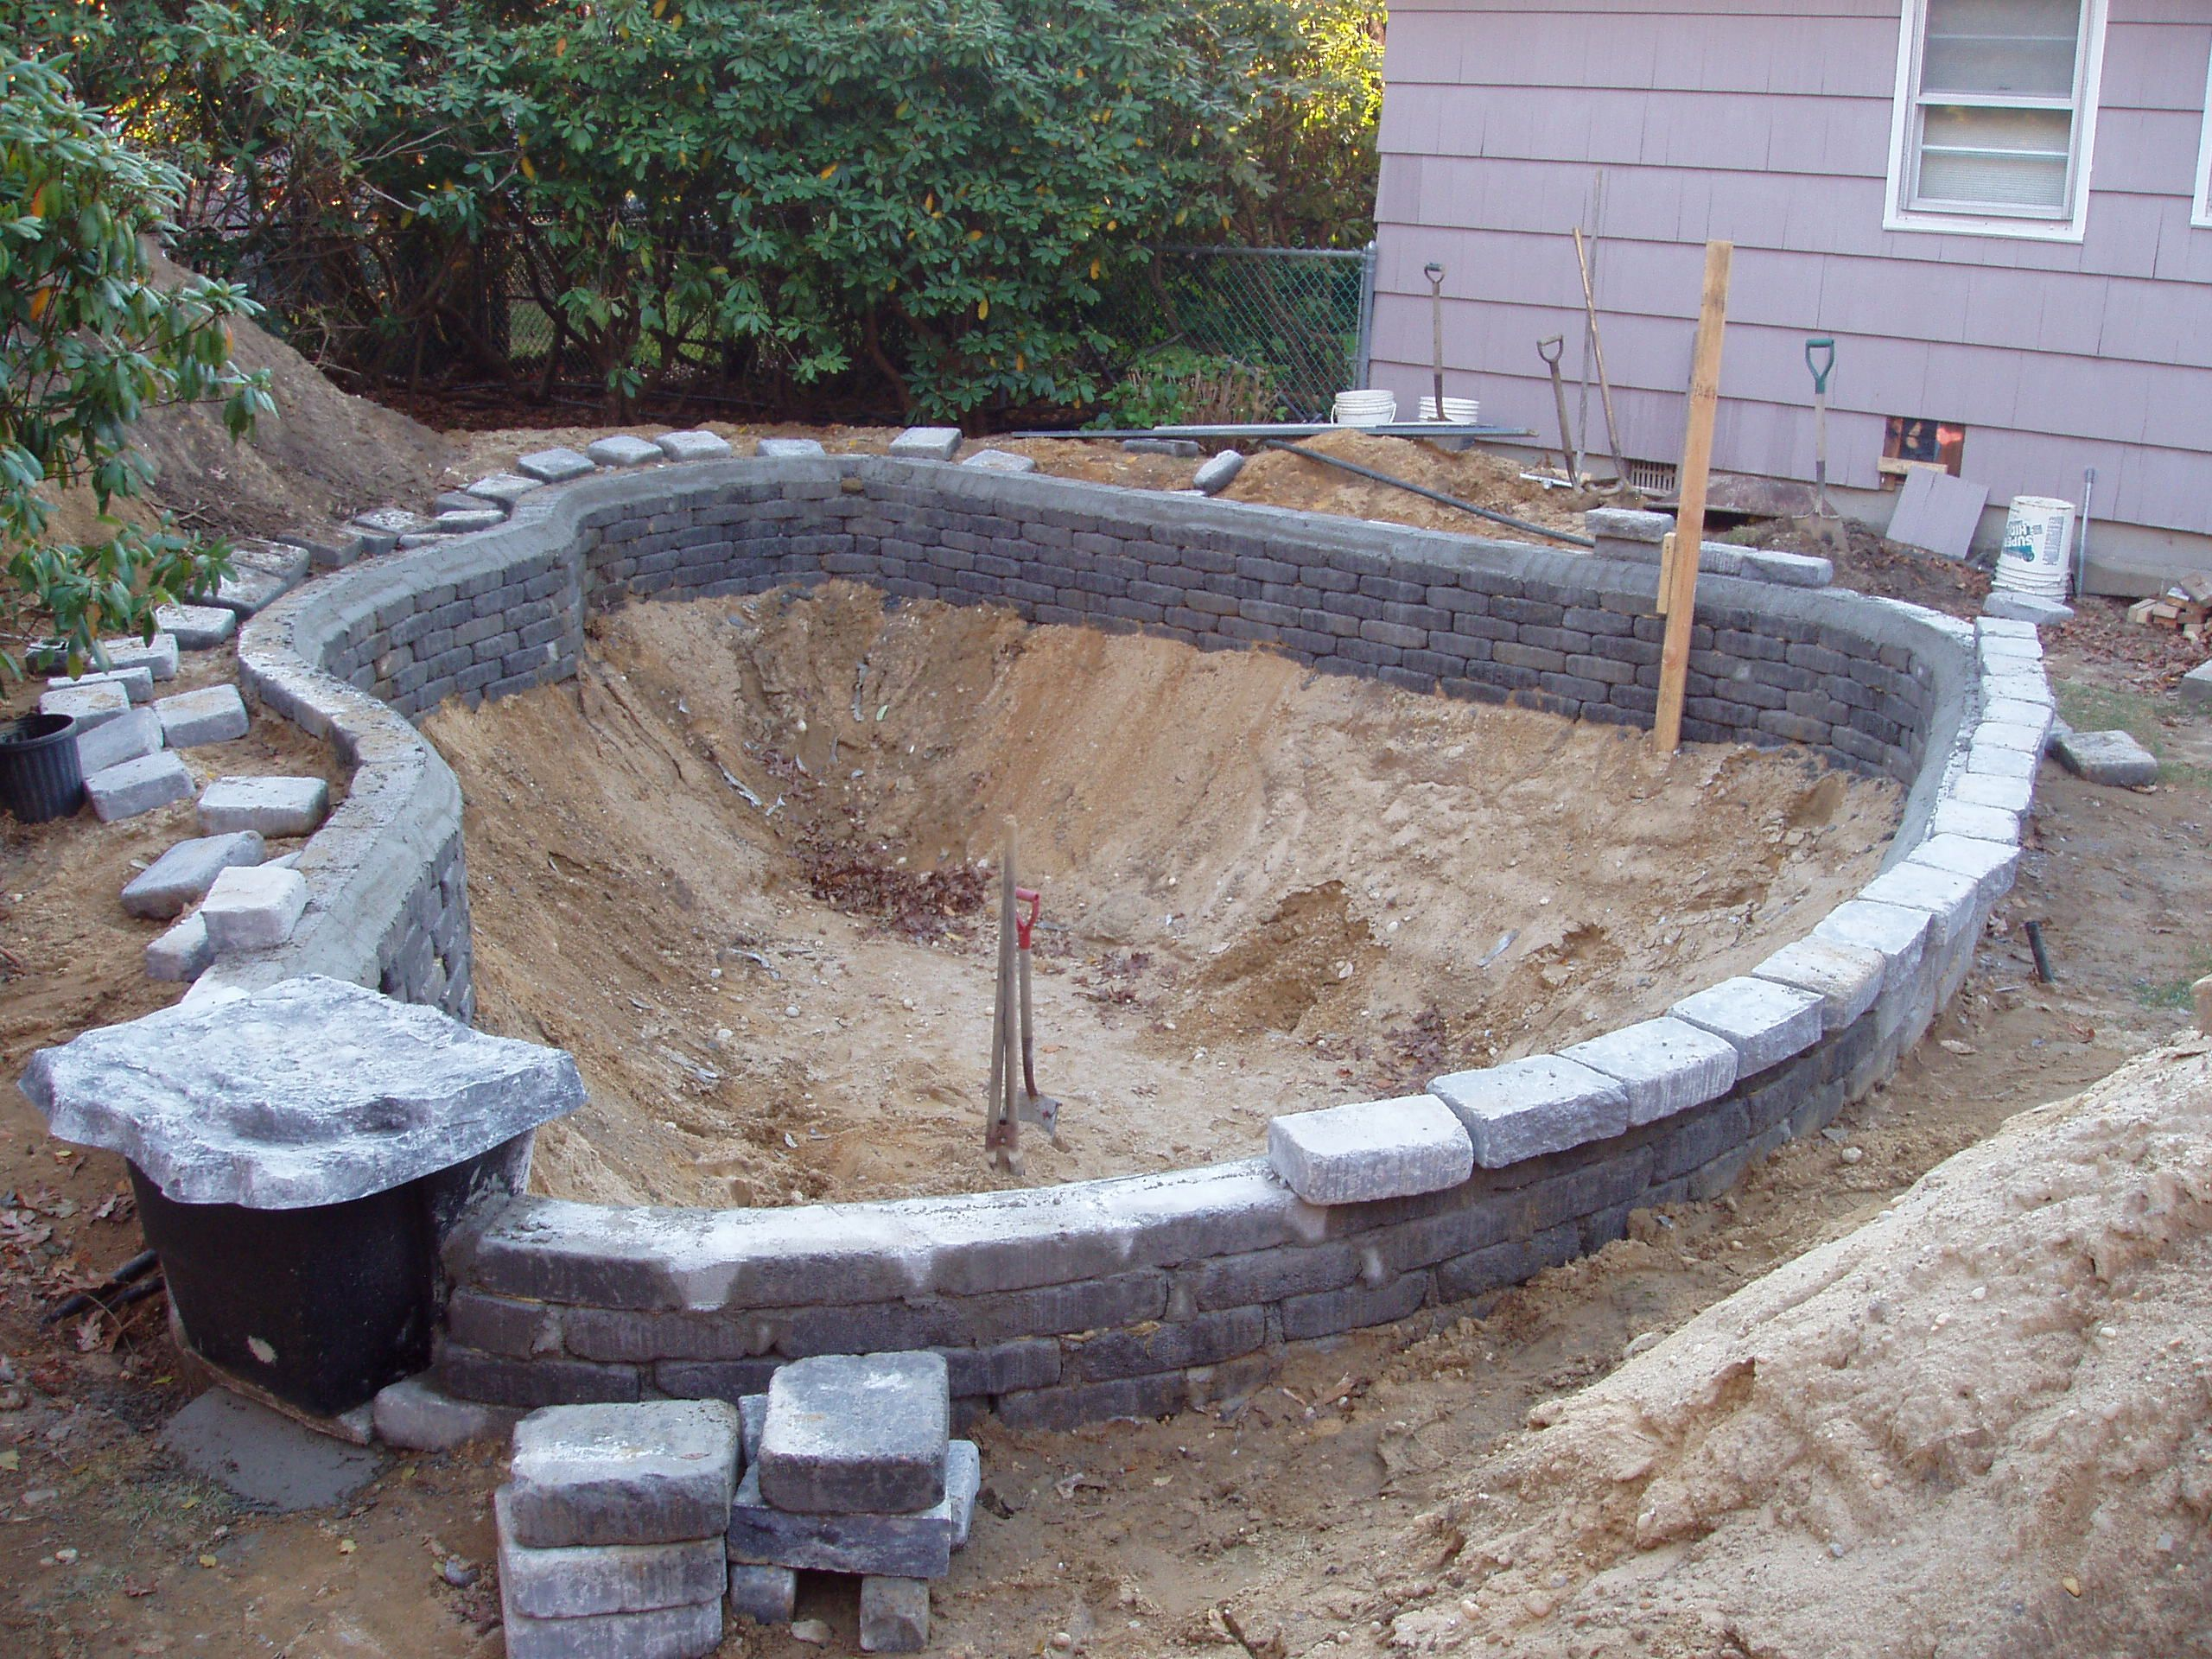 Pond design and construction google search aquaponics for Building a koi fish pond